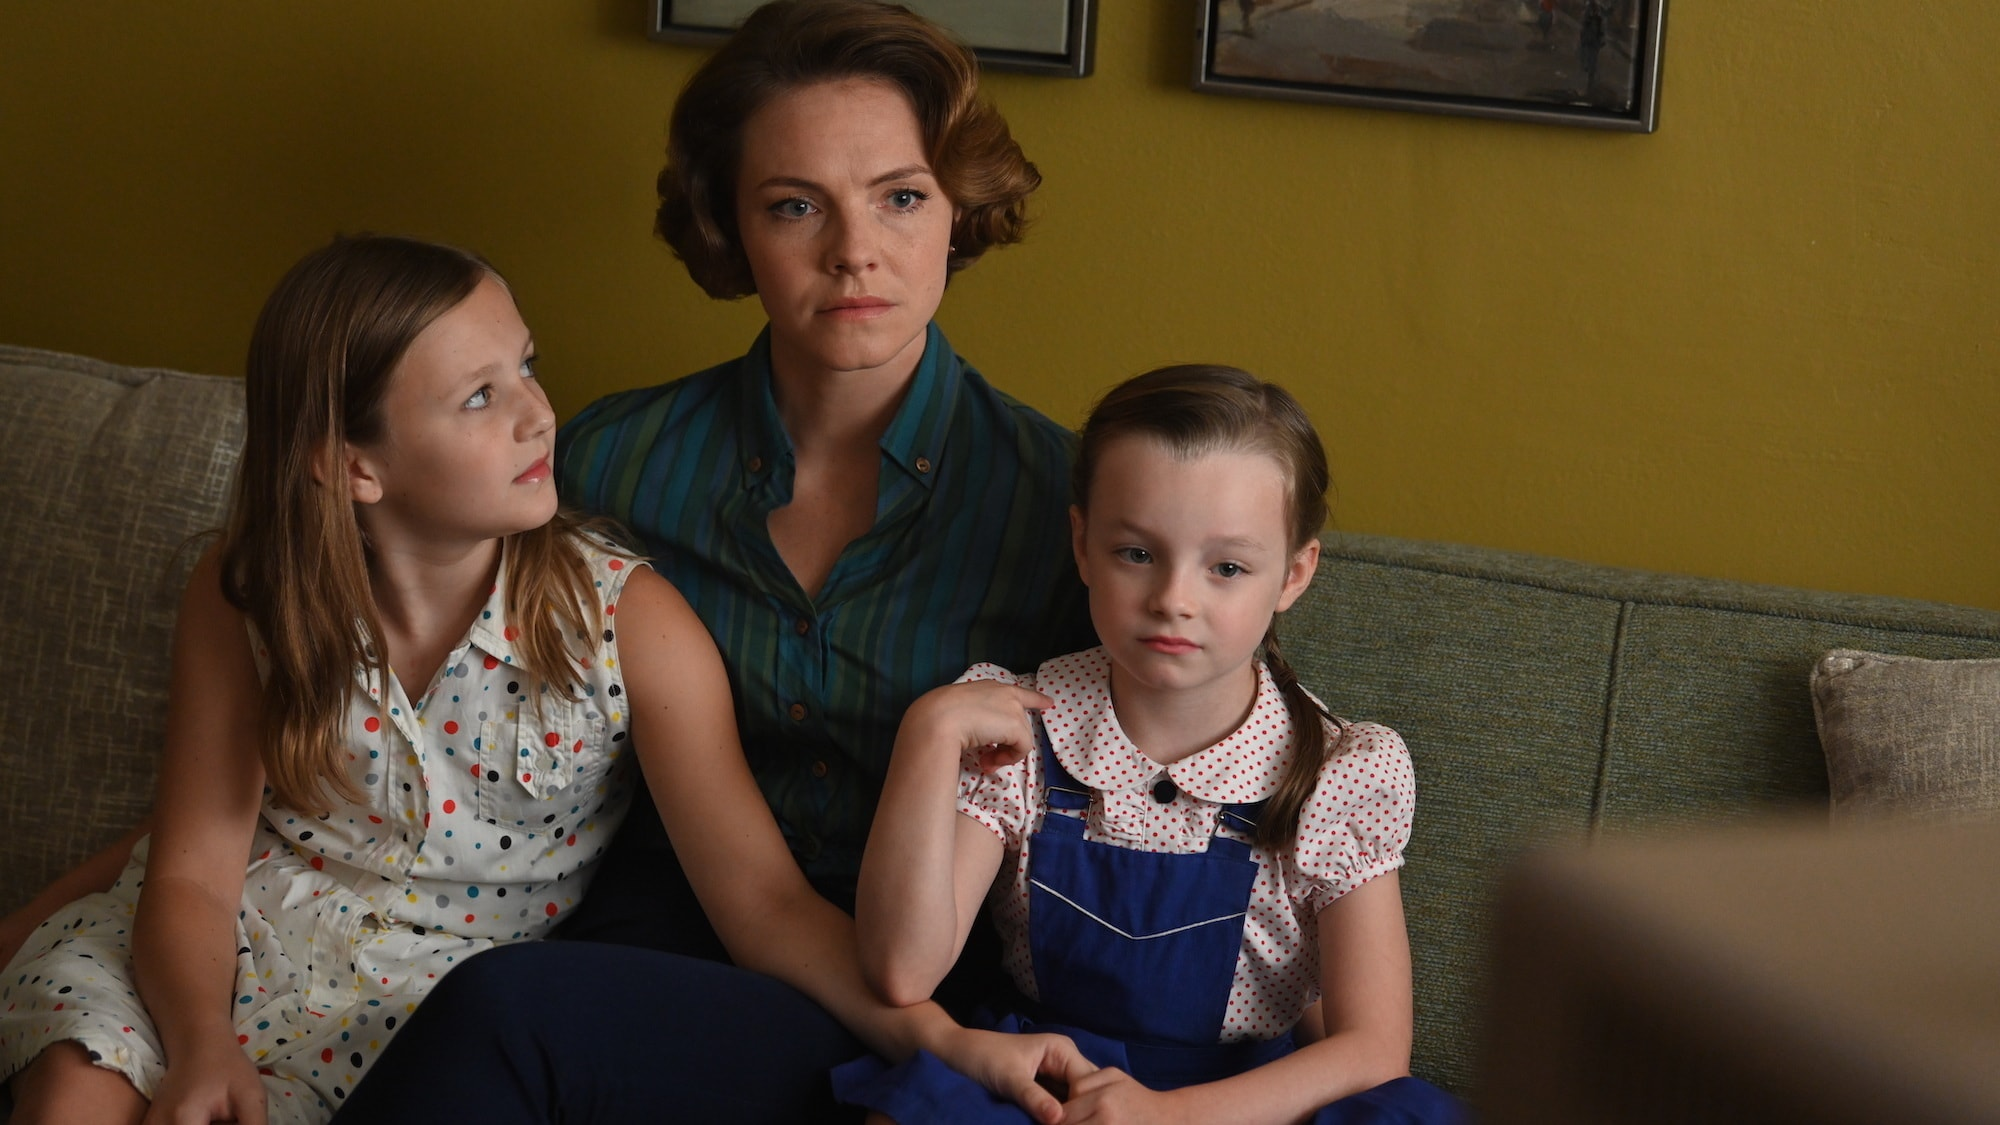 Trudy Cooper, played by Eloise Mumford, watches a press conference on TV with her daughters in National Geographic's THE RIGHT STUFF streaming on Disney+. (Credit: National Geographic/Gene Page)